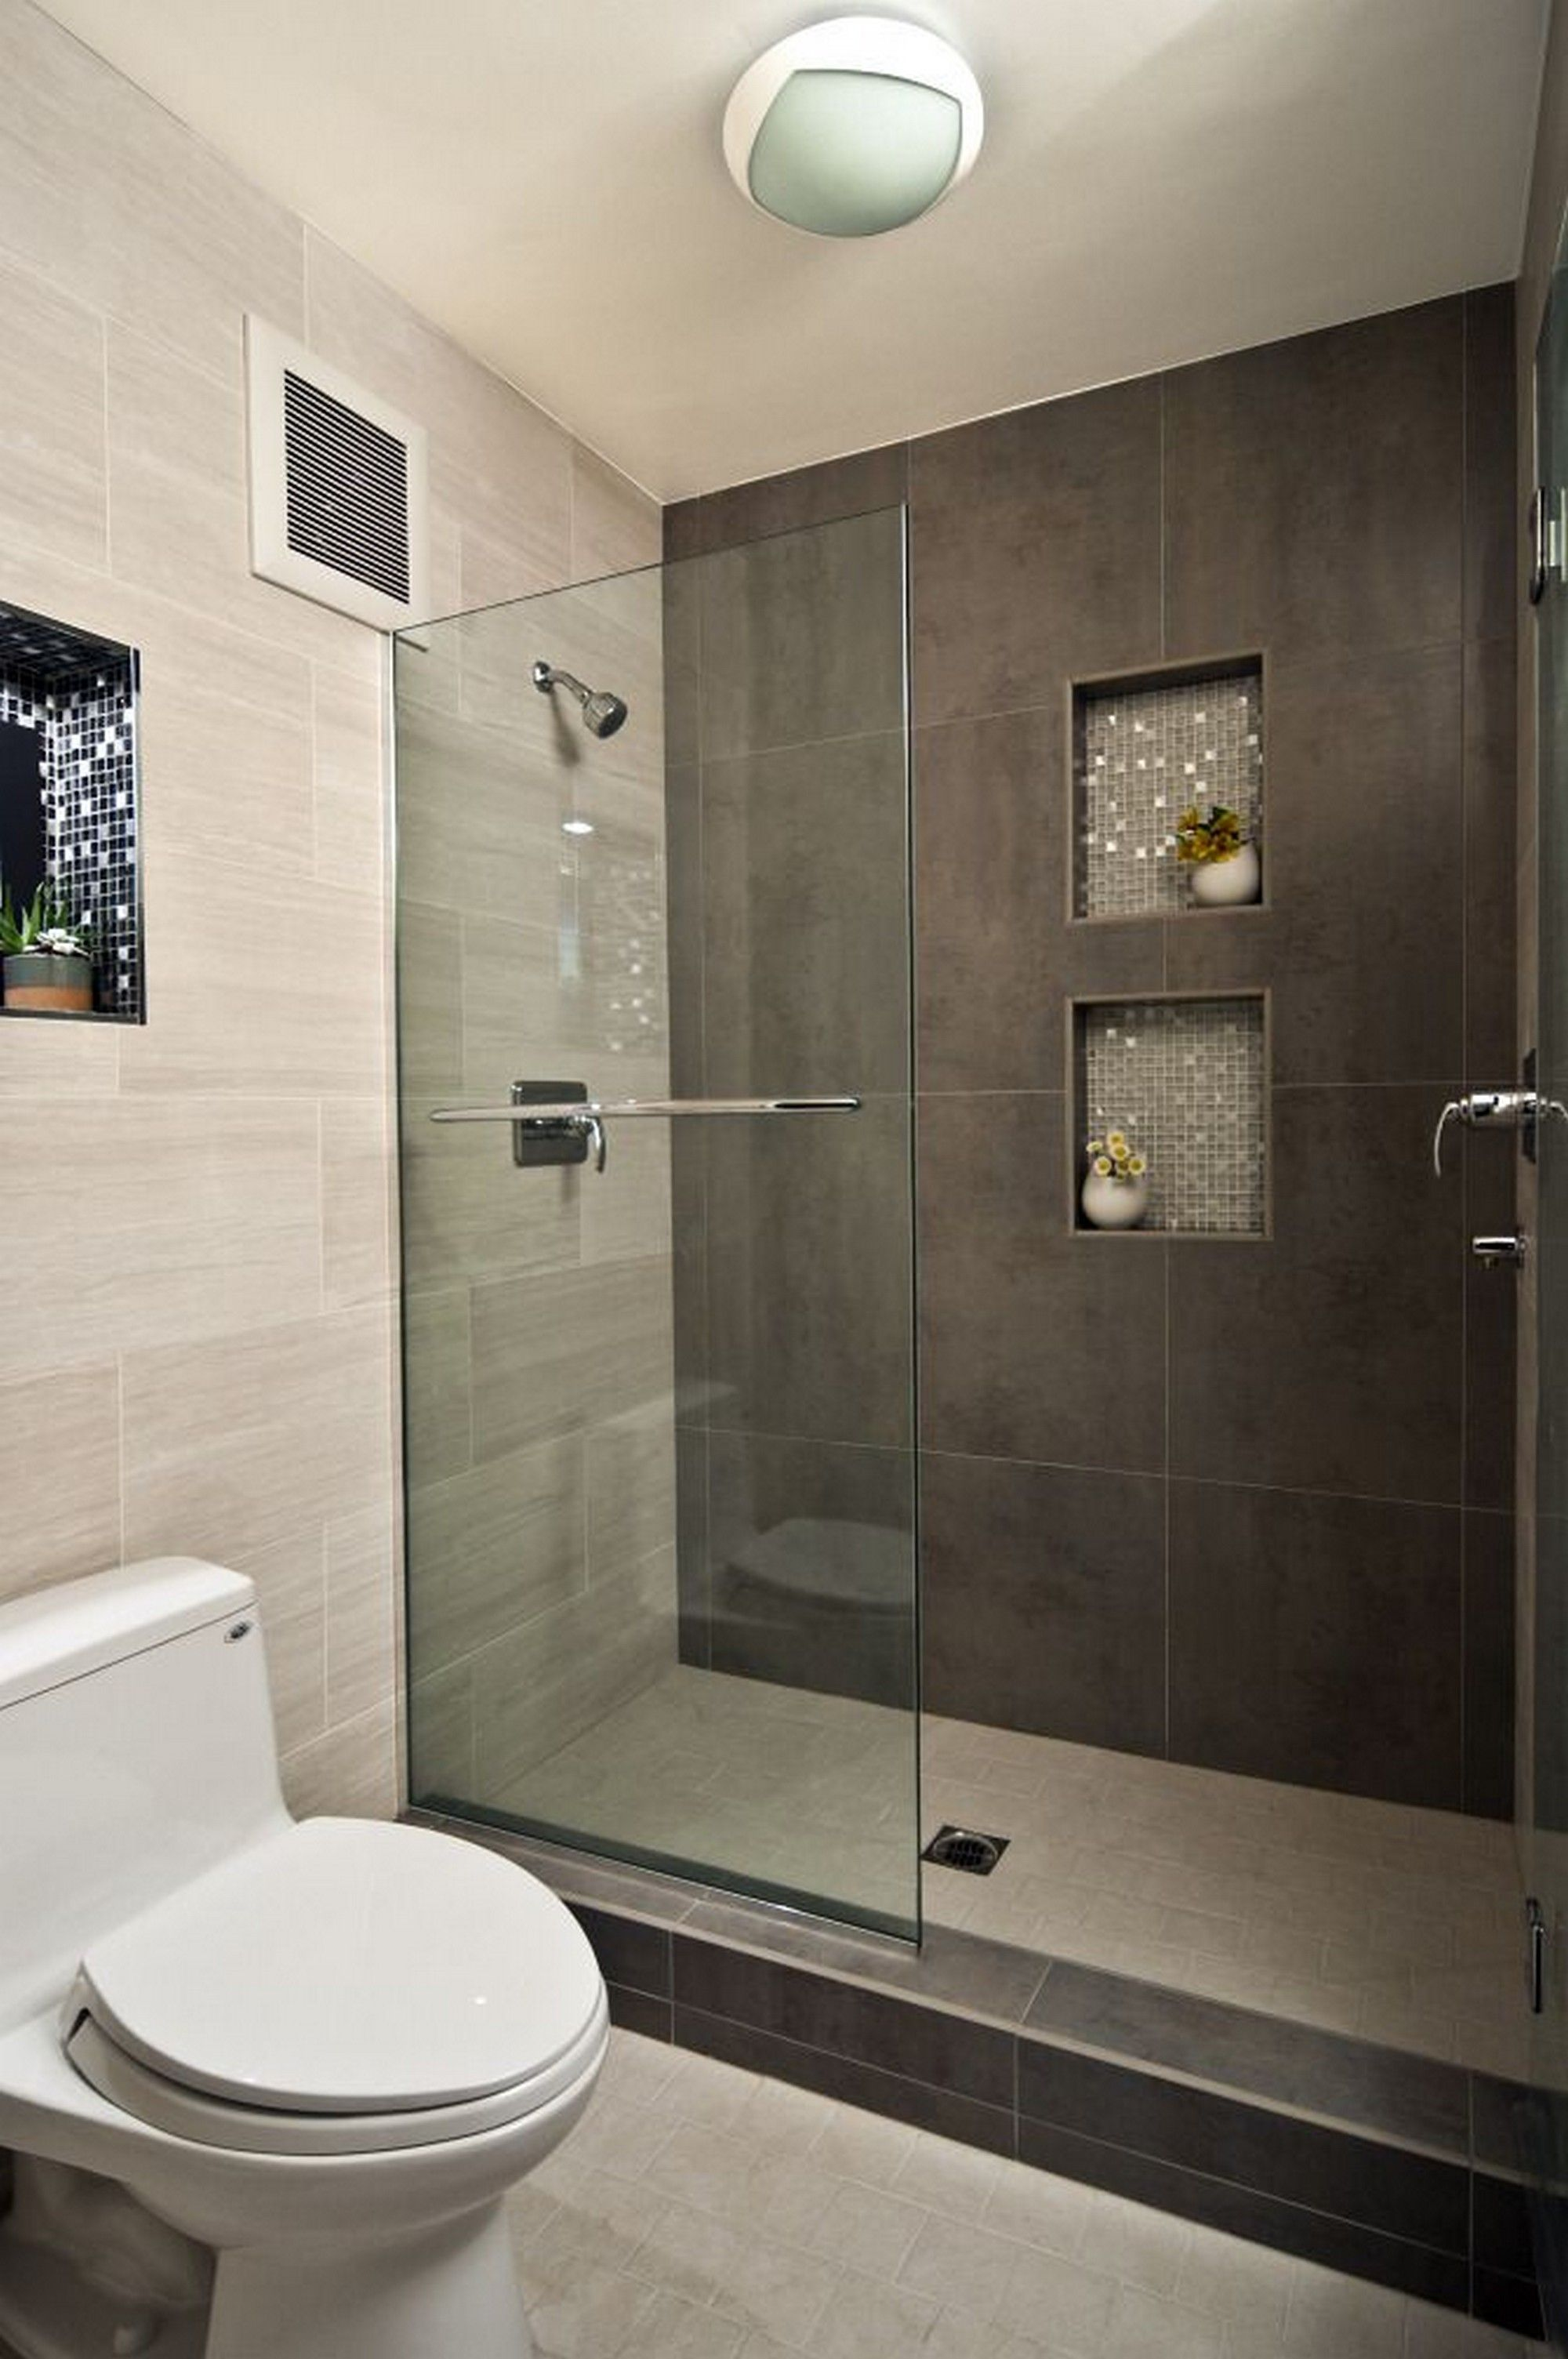 Modern Bathroom Design Ideas With Walk In Shower Bathroom Ideas - Small-bathroom-design